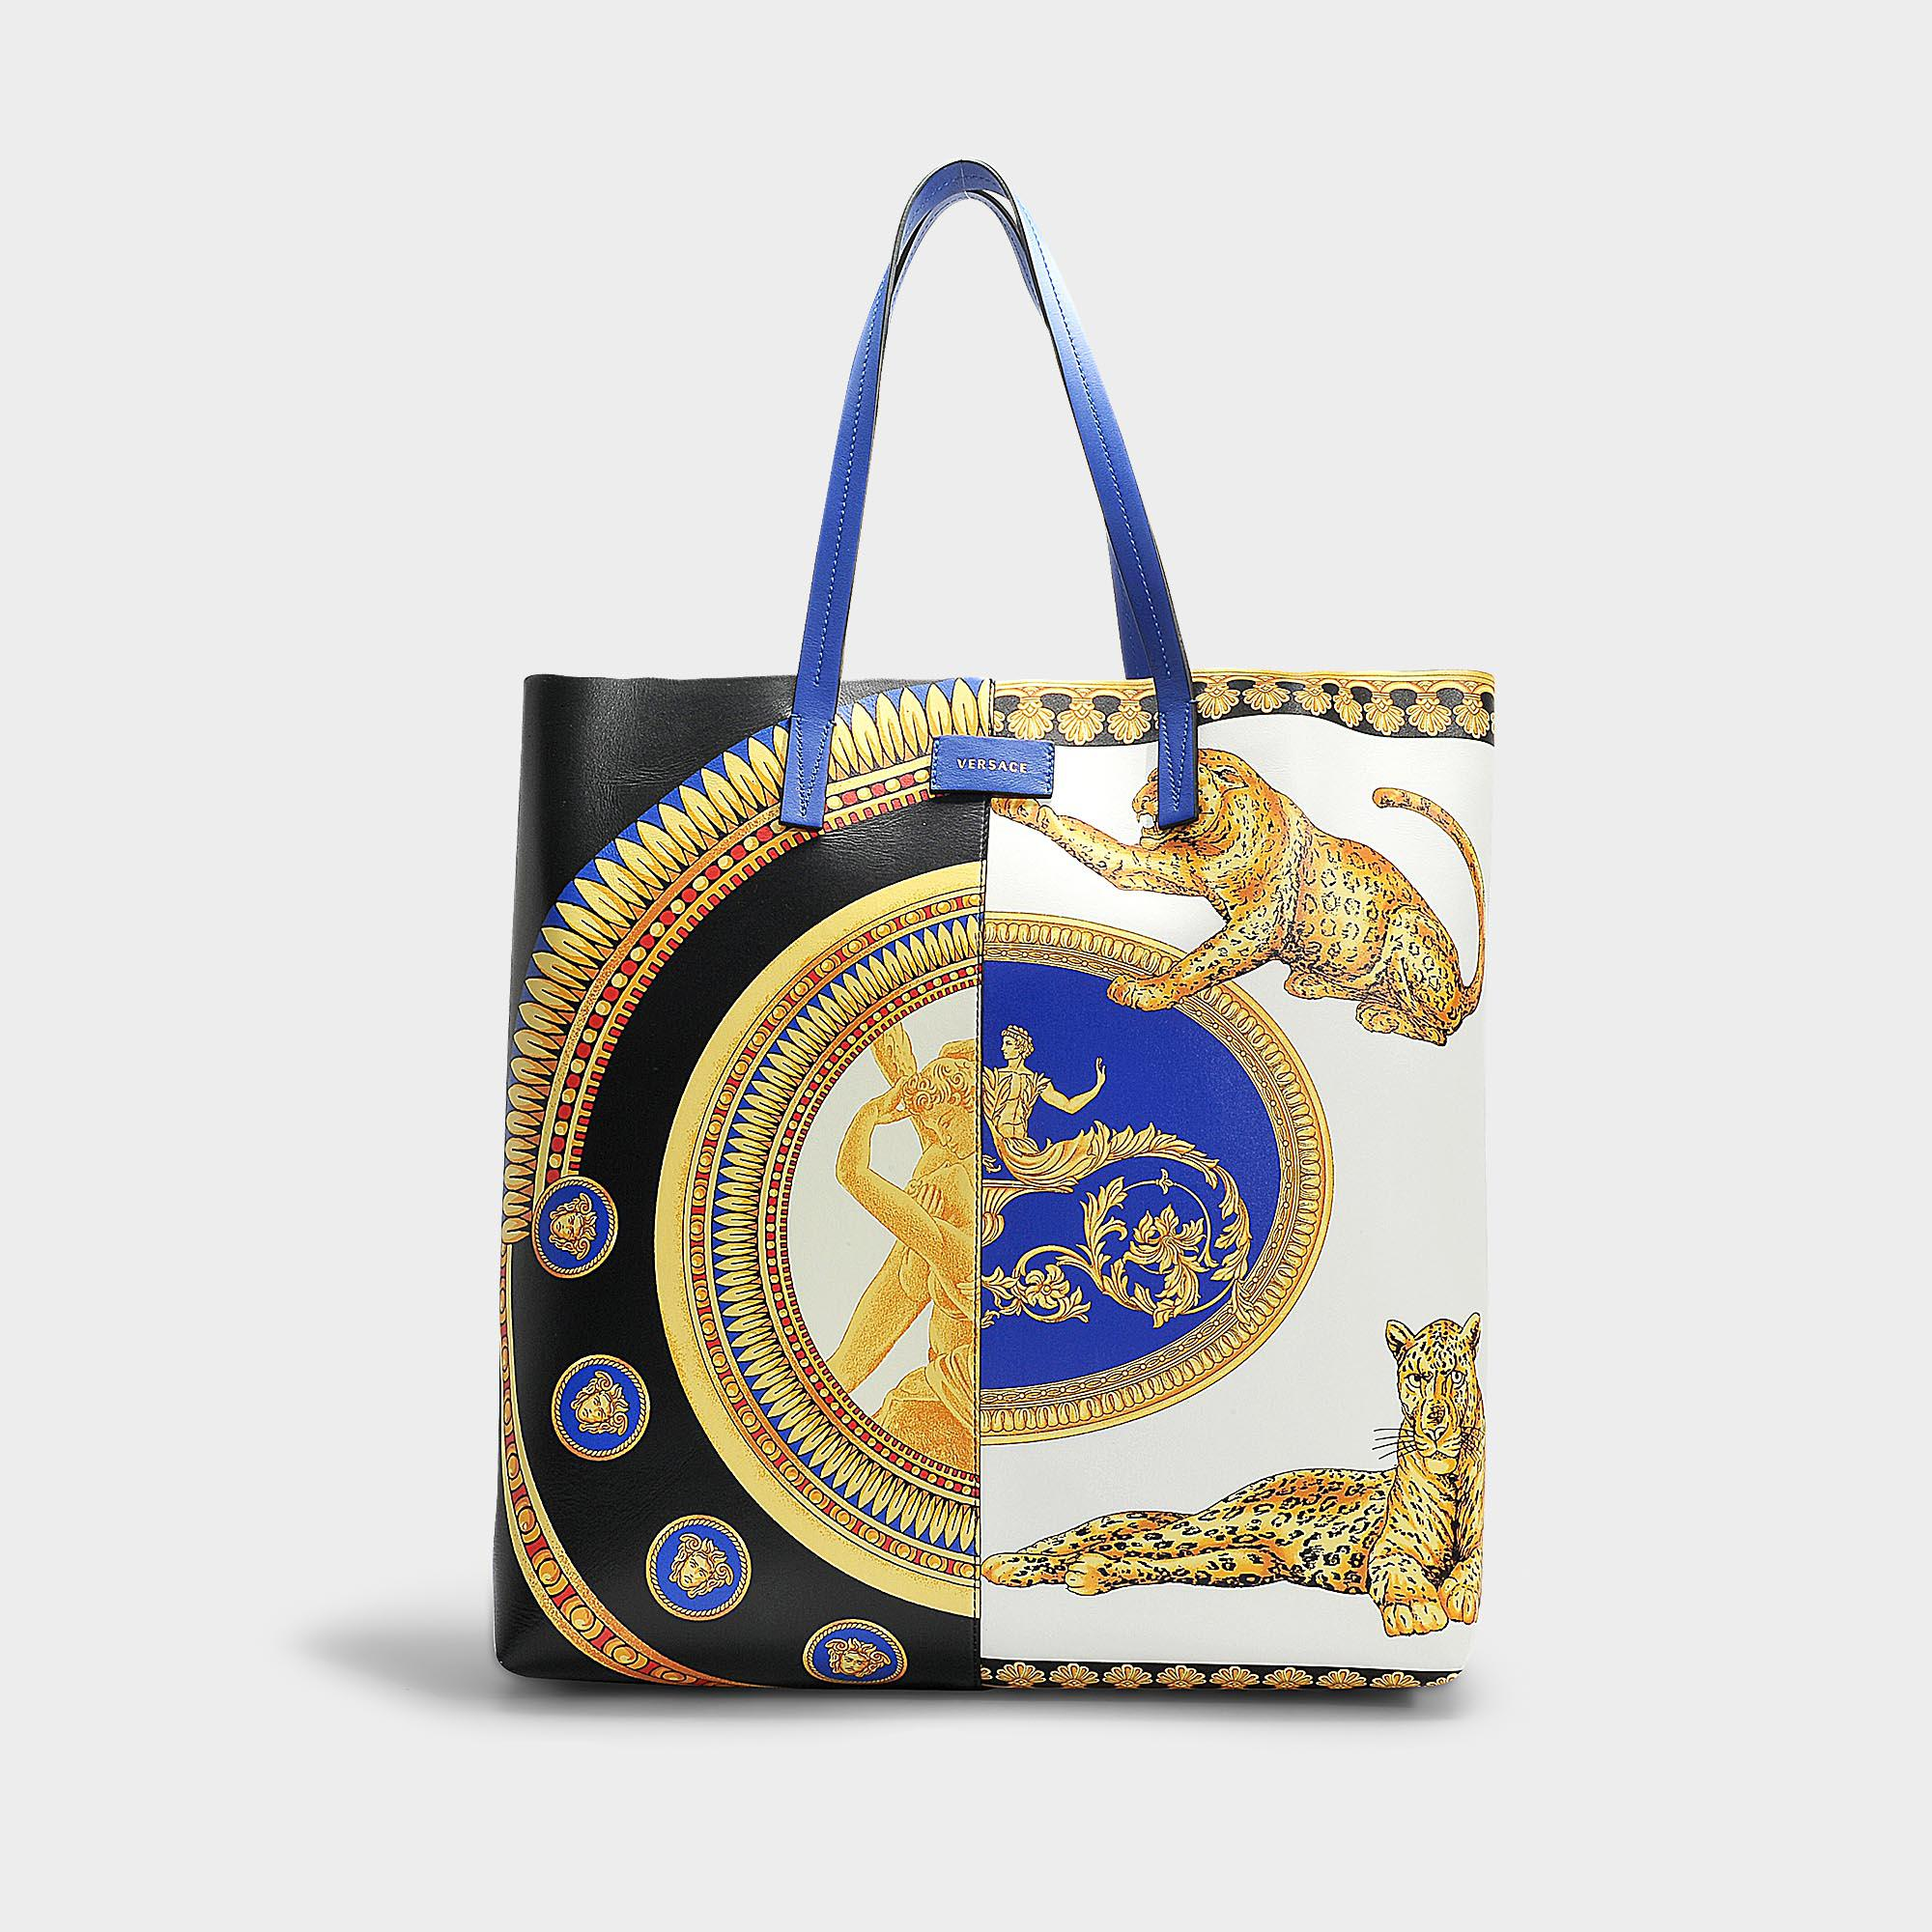 fbad002620bb Lyst - Versace The Lovers Tote In Blue Calfskin